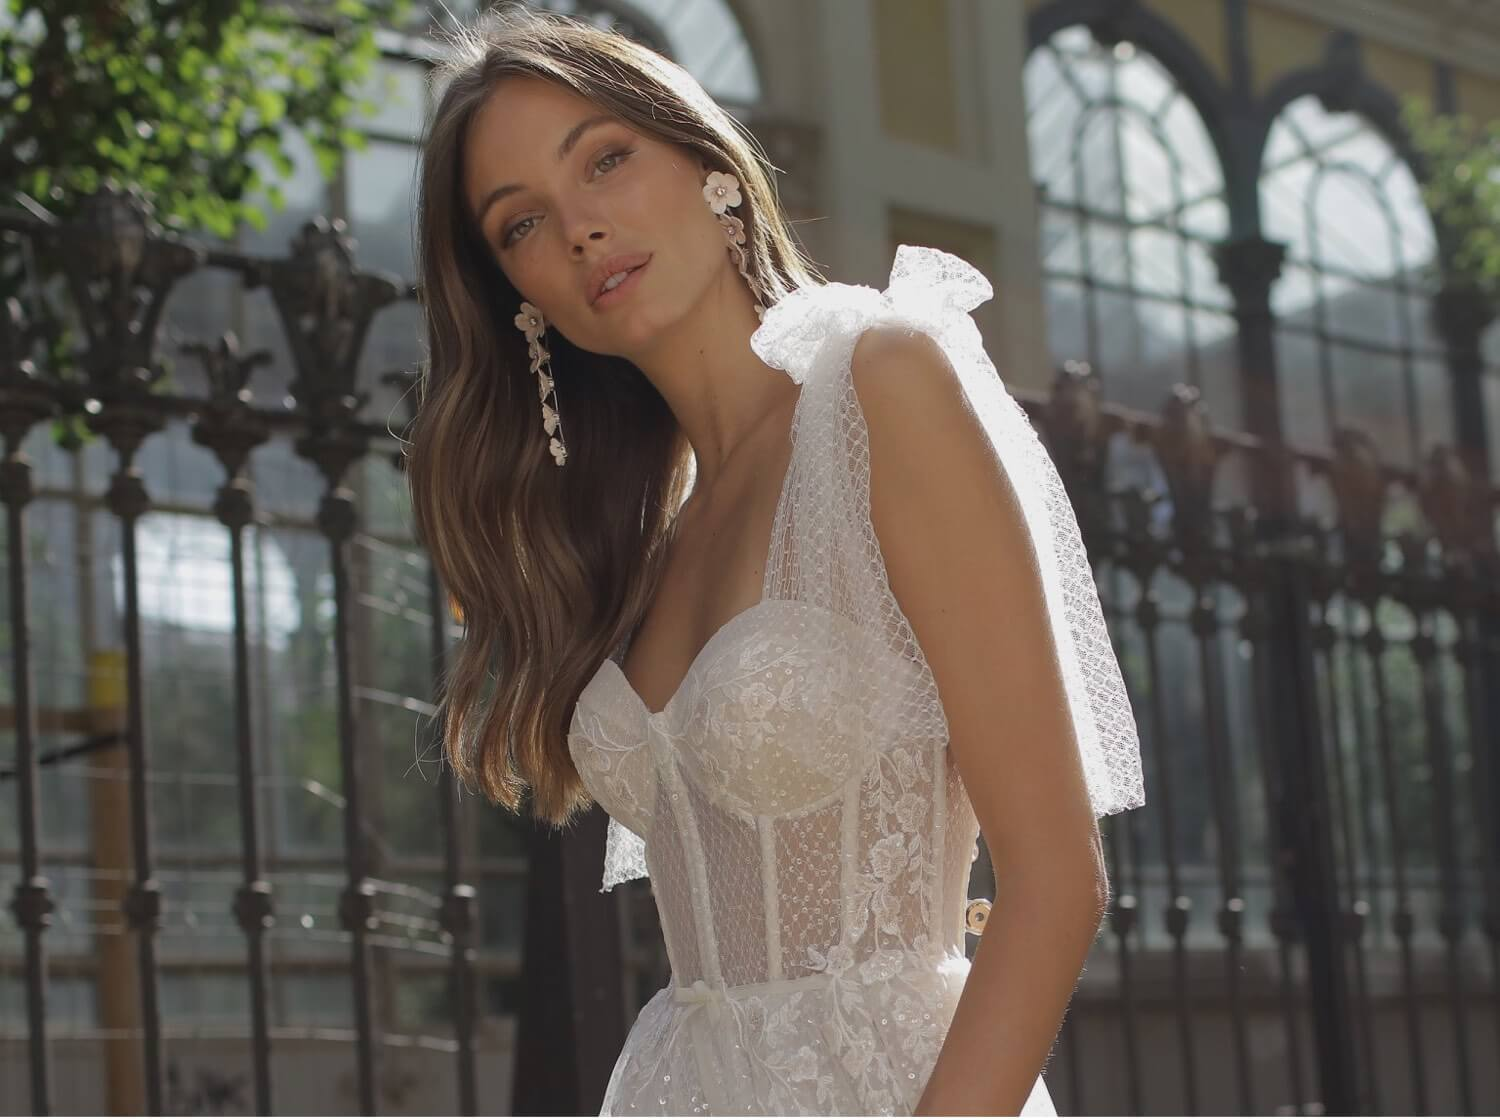 Model wearing a white bridal gown by Berta